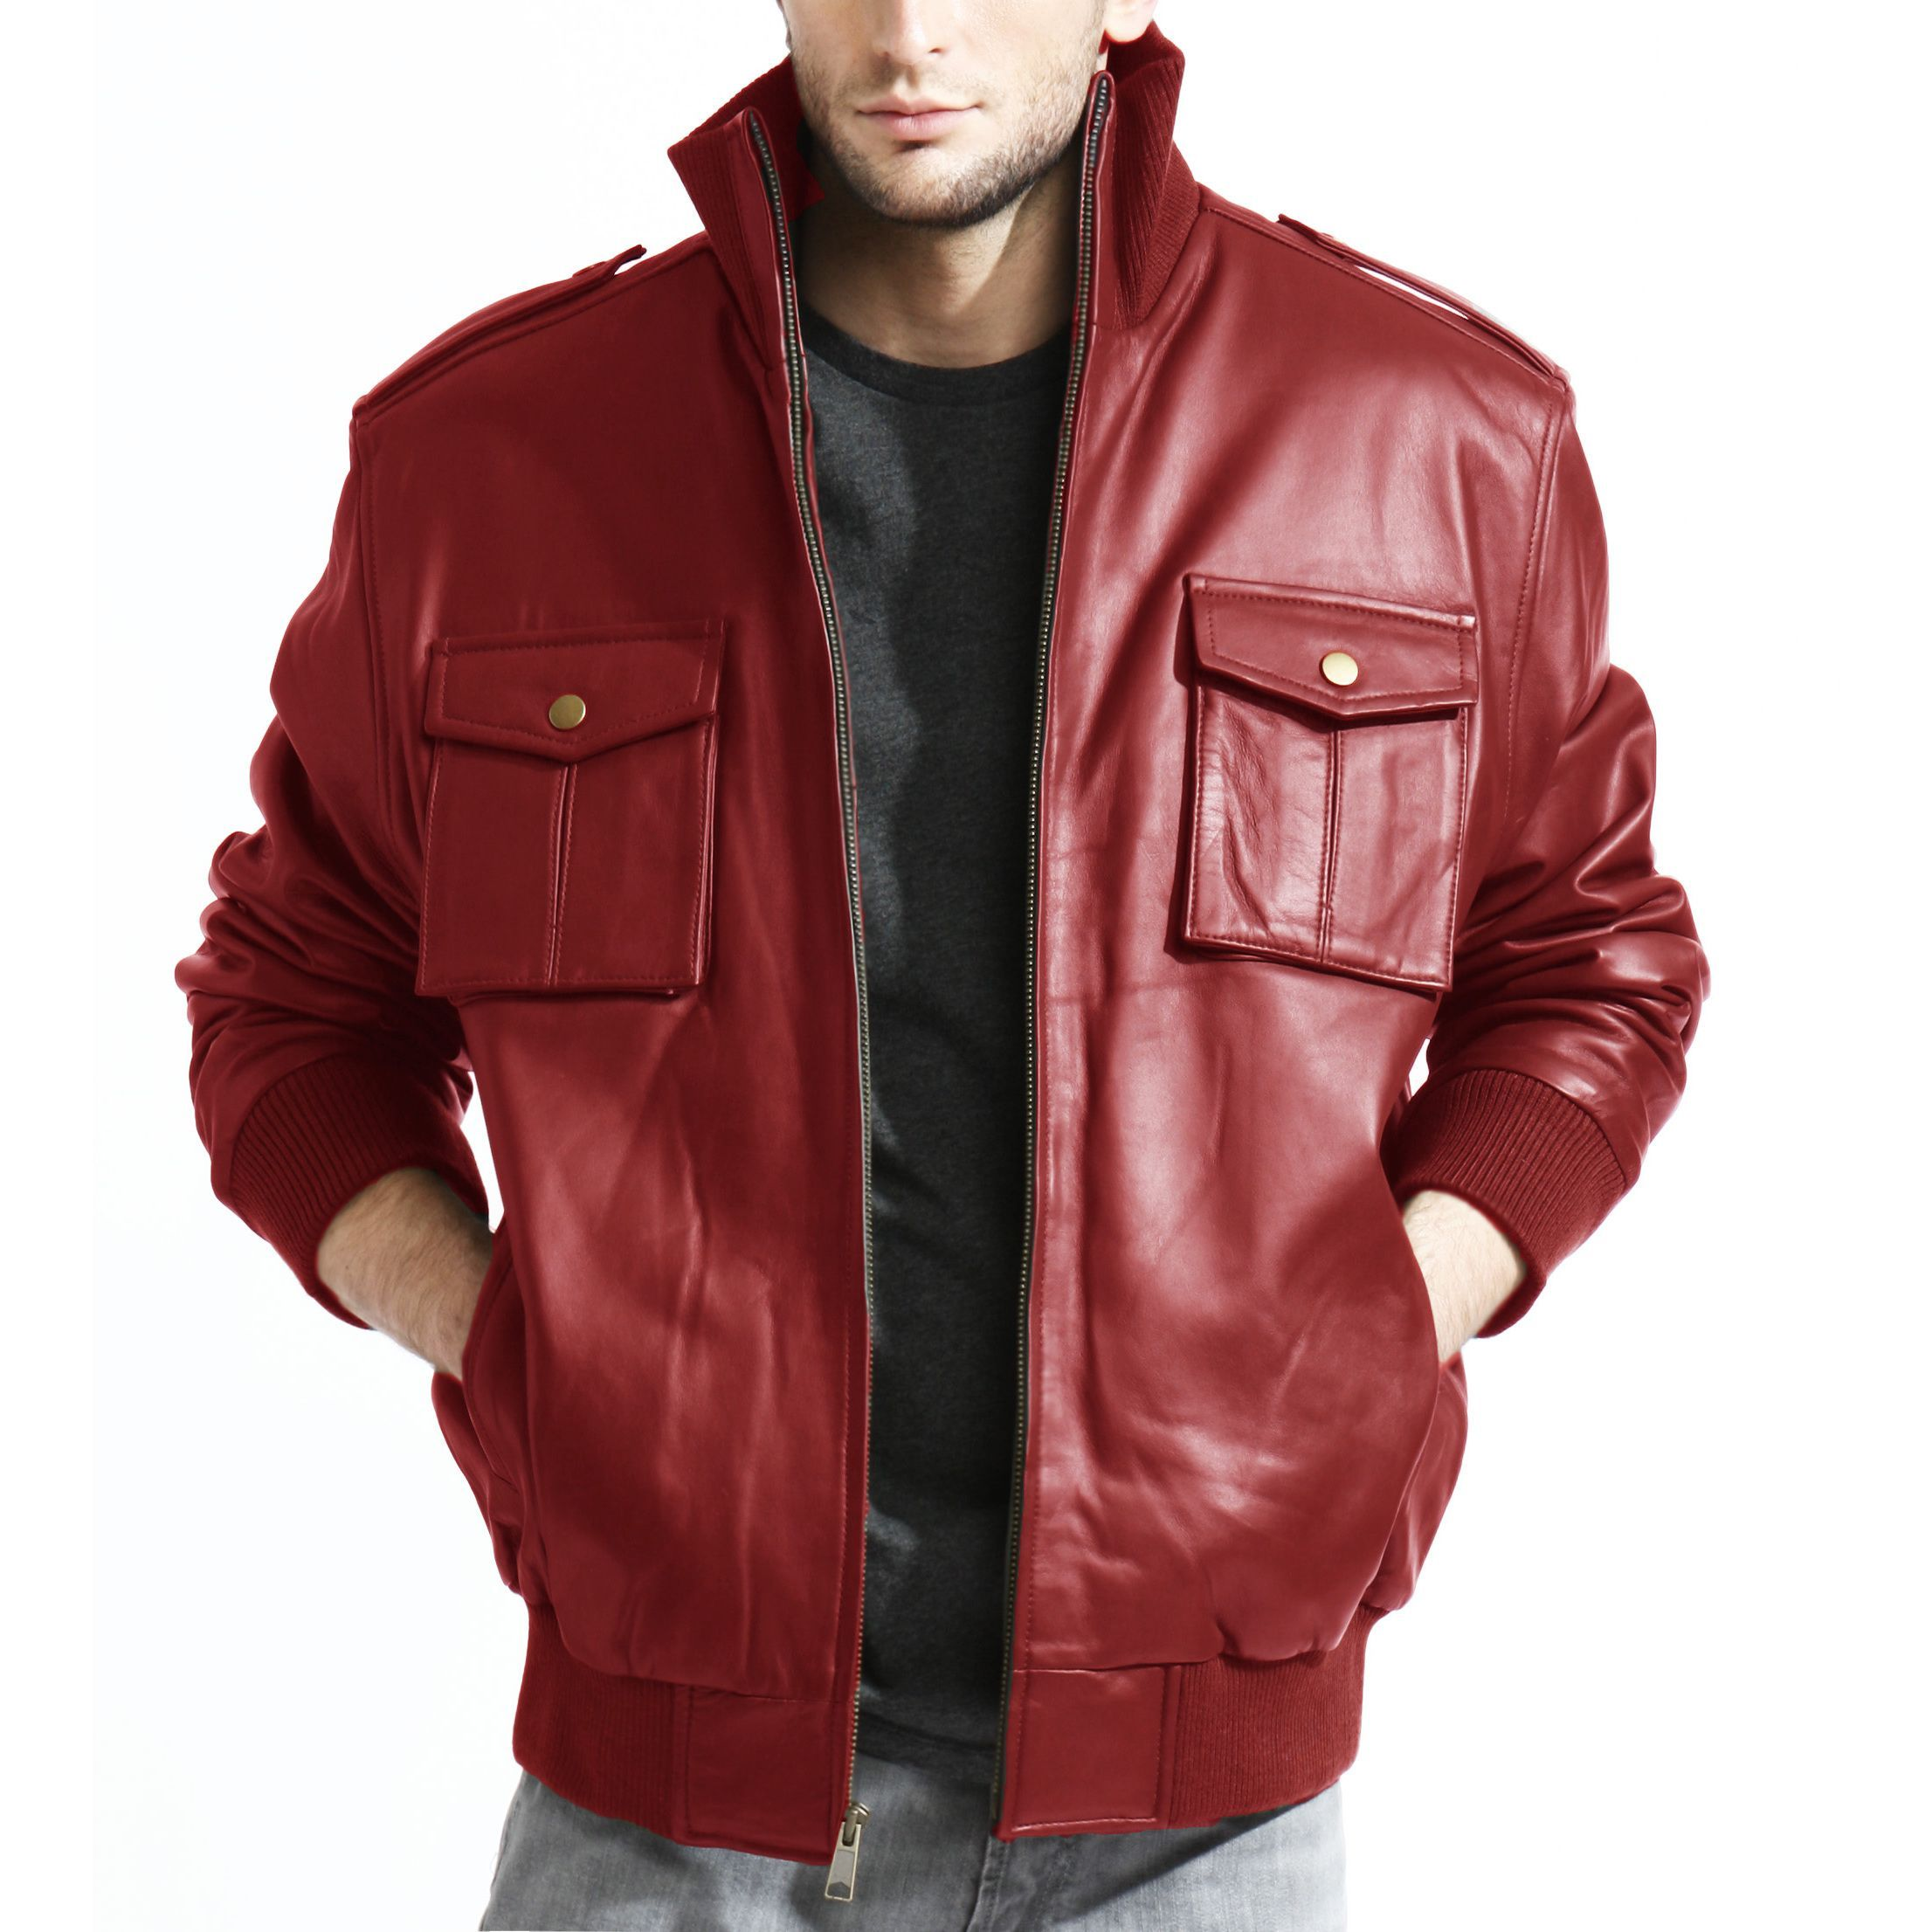 Overstock Com Online Shopping Bedding Furniture Electronics Jewelry Clothing More Red Bomber Jacket Men Leather Bomber Jacket Pocket Bomber Jacket [ 2212 x 2212 Pixel ]